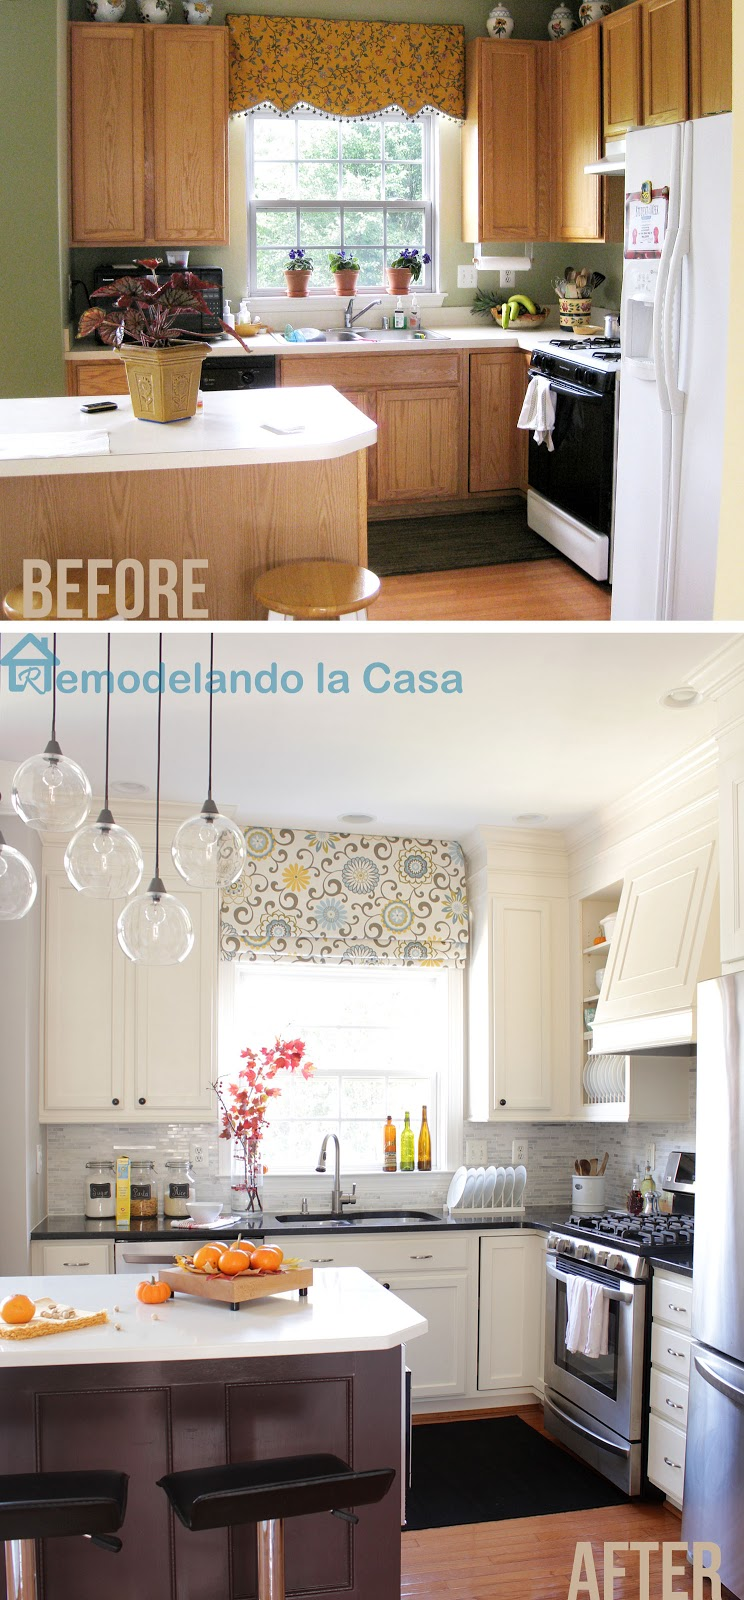 Kitchen makeover remodelando la casa for Small kitchen makeovers